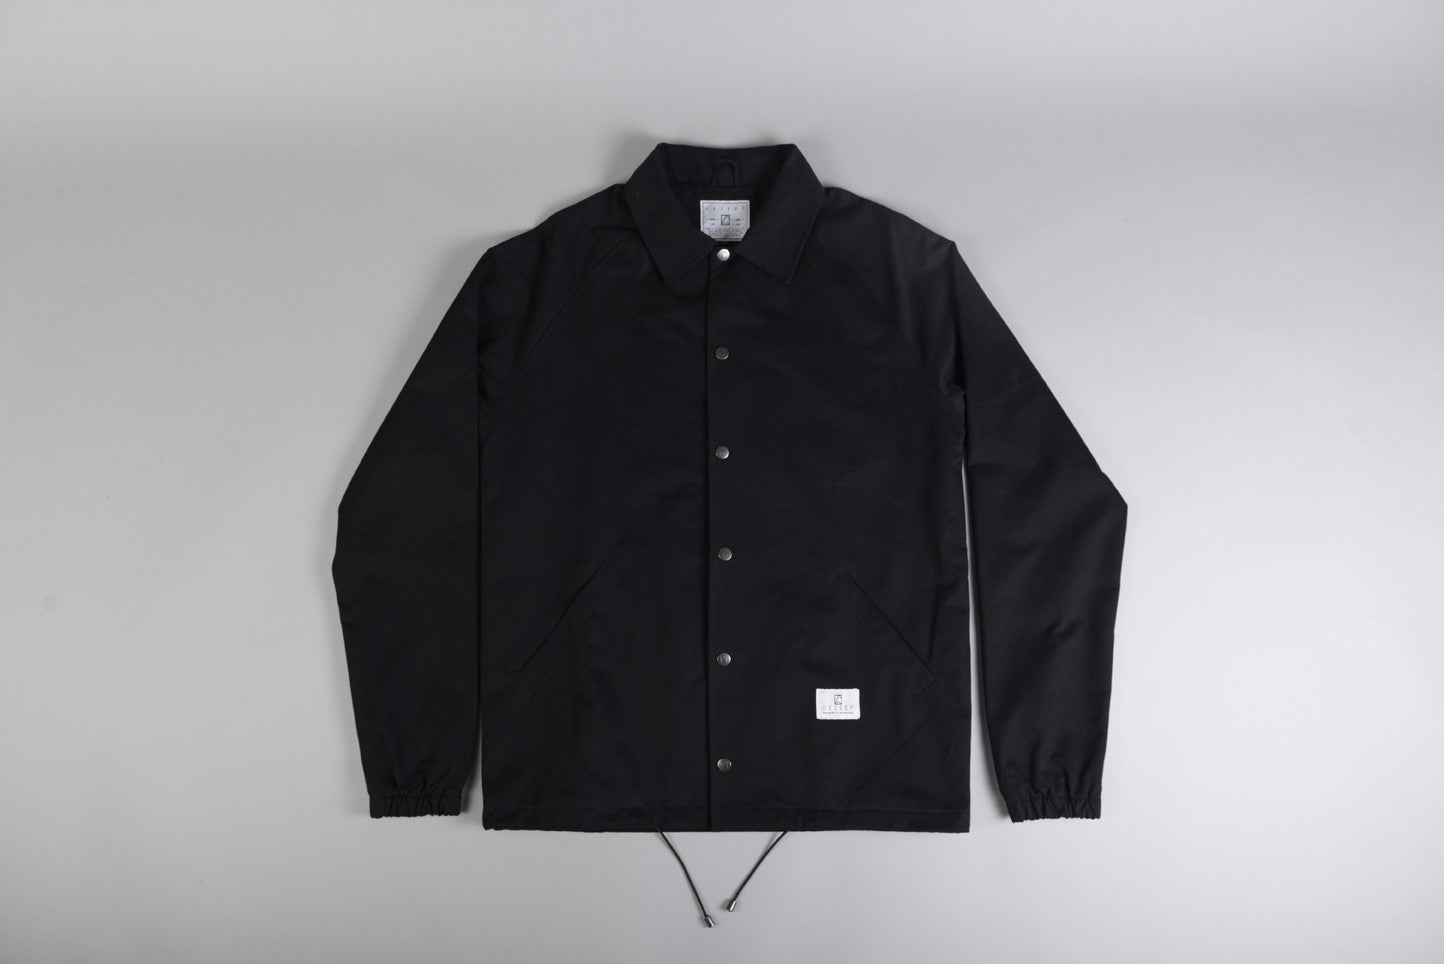 Pack Jacket Black